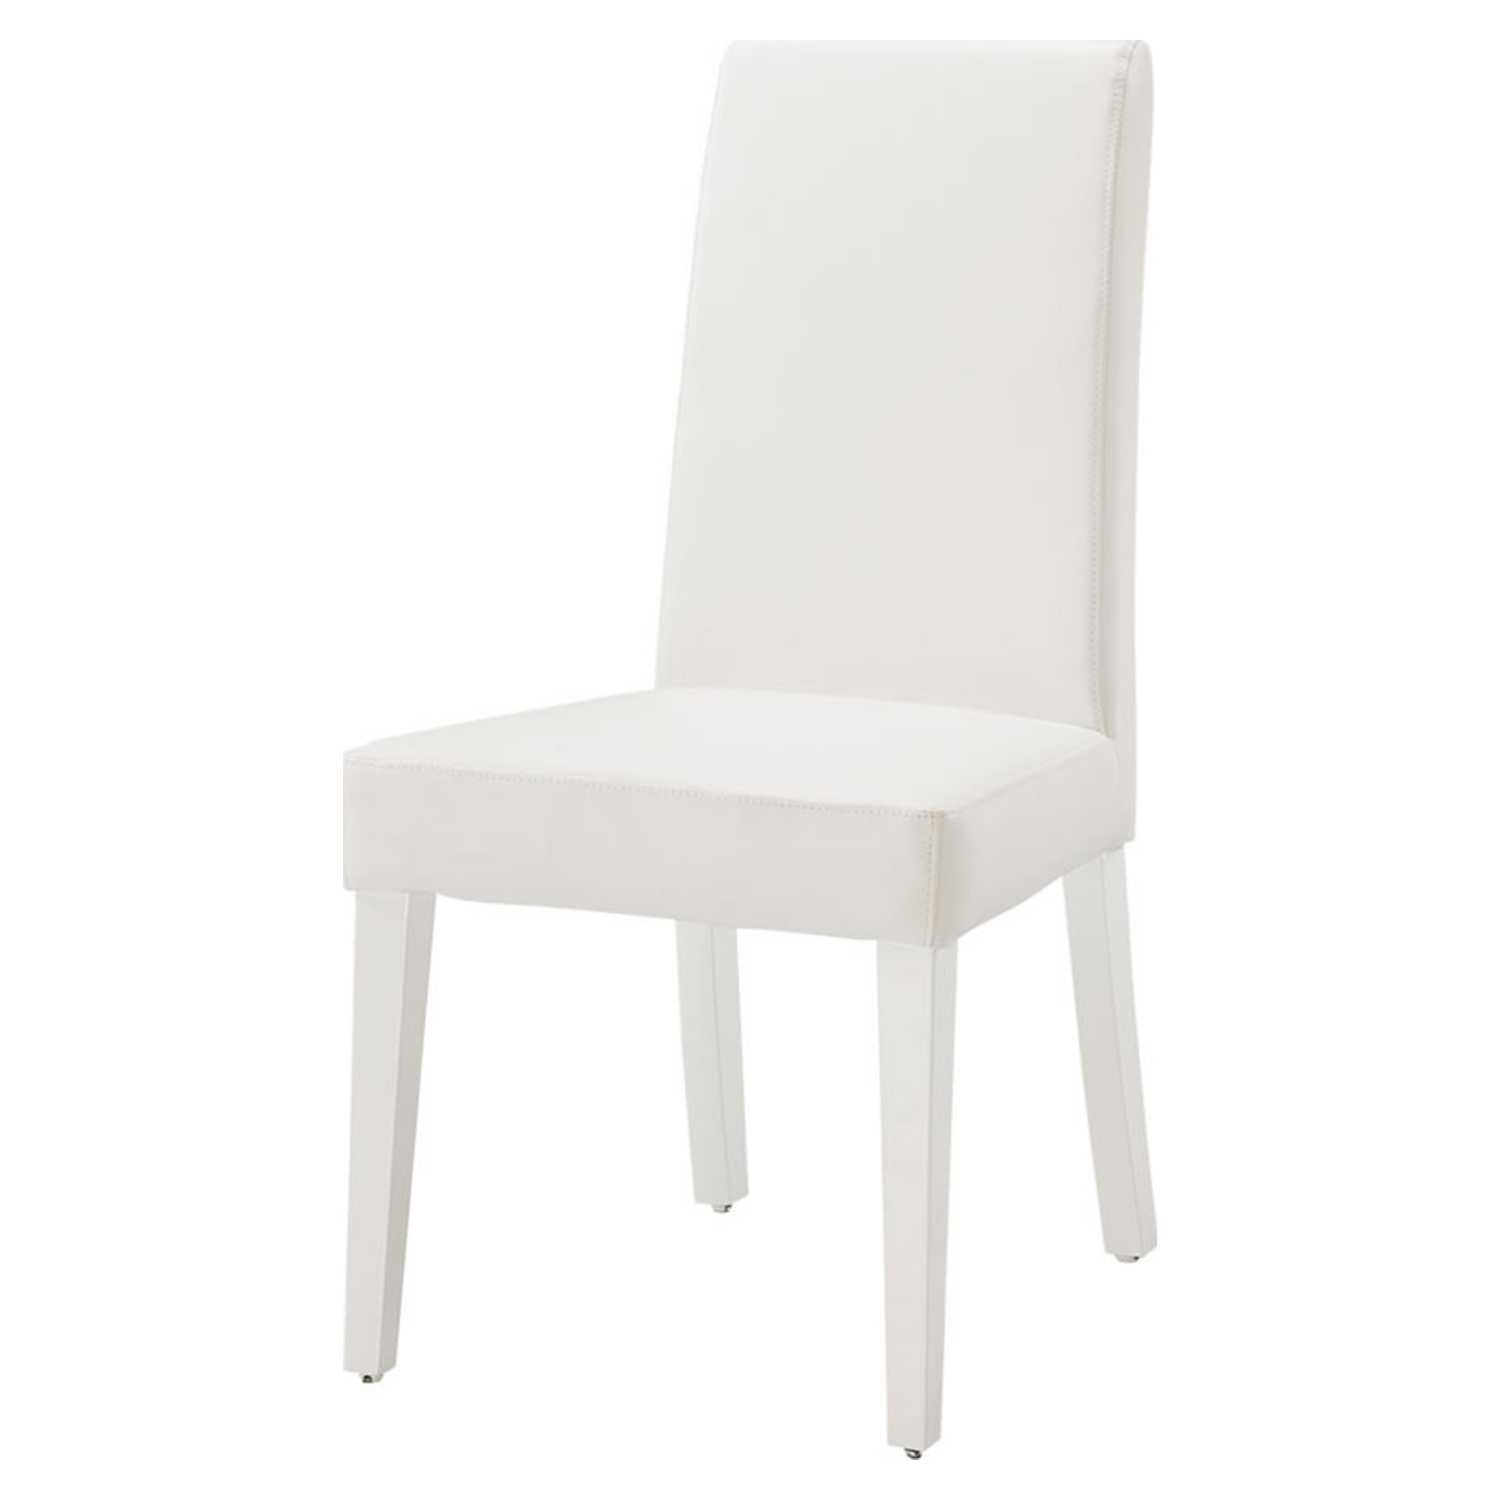 Tristan Dining Chair, Glossy White - GLO-DG020DC-WH-KD-M